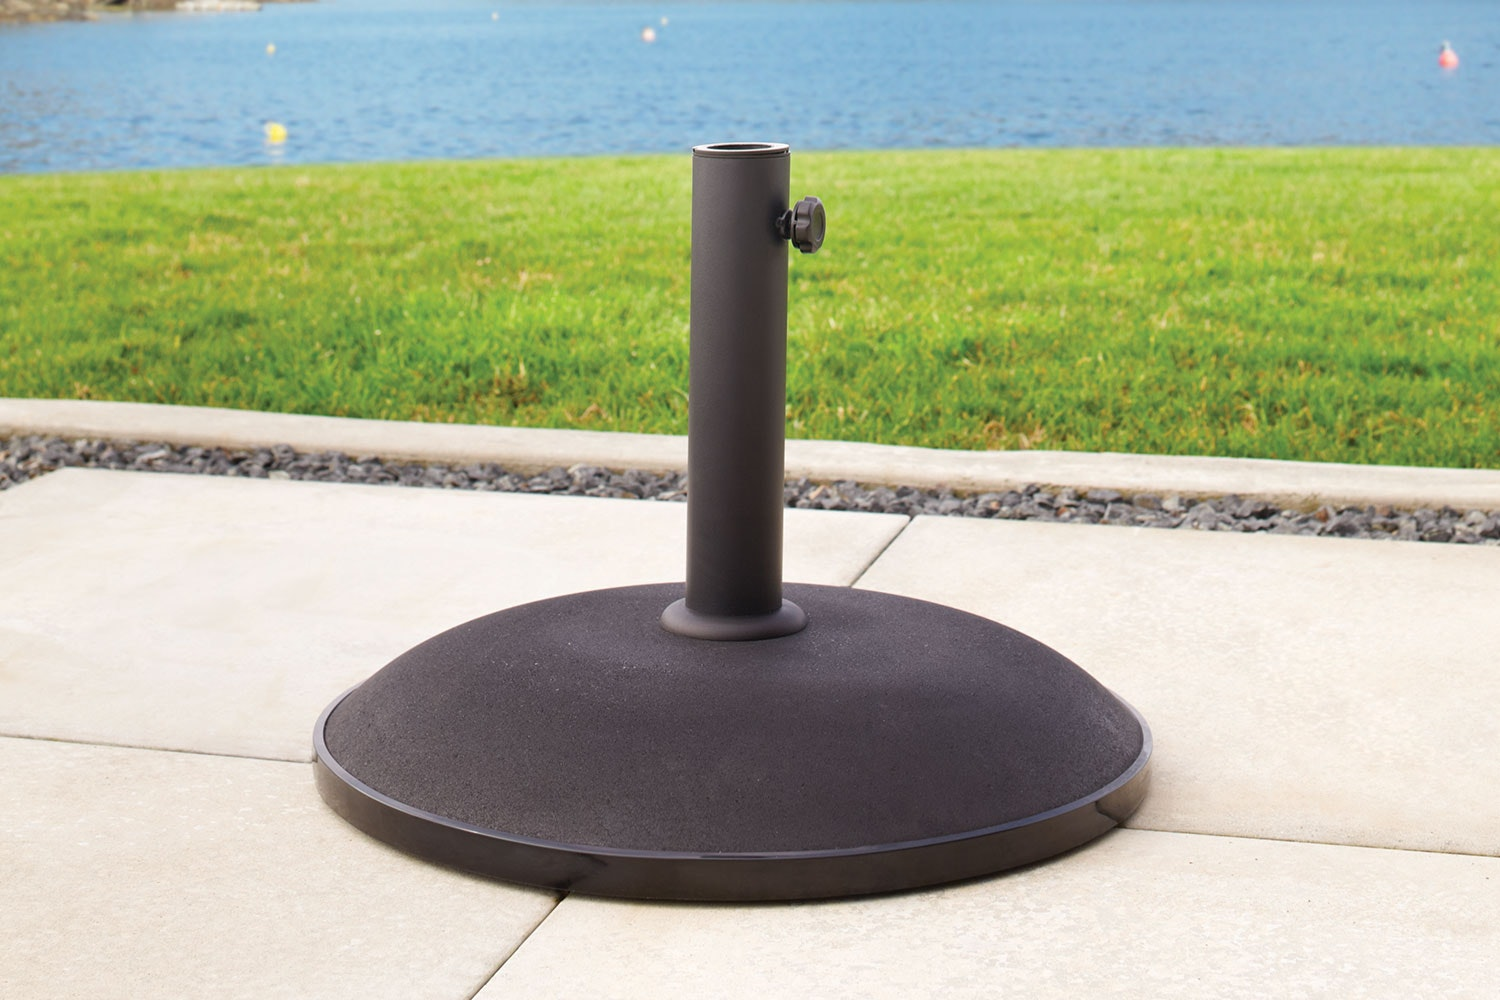 25kg Black Concrete Umbrella Base by Peros